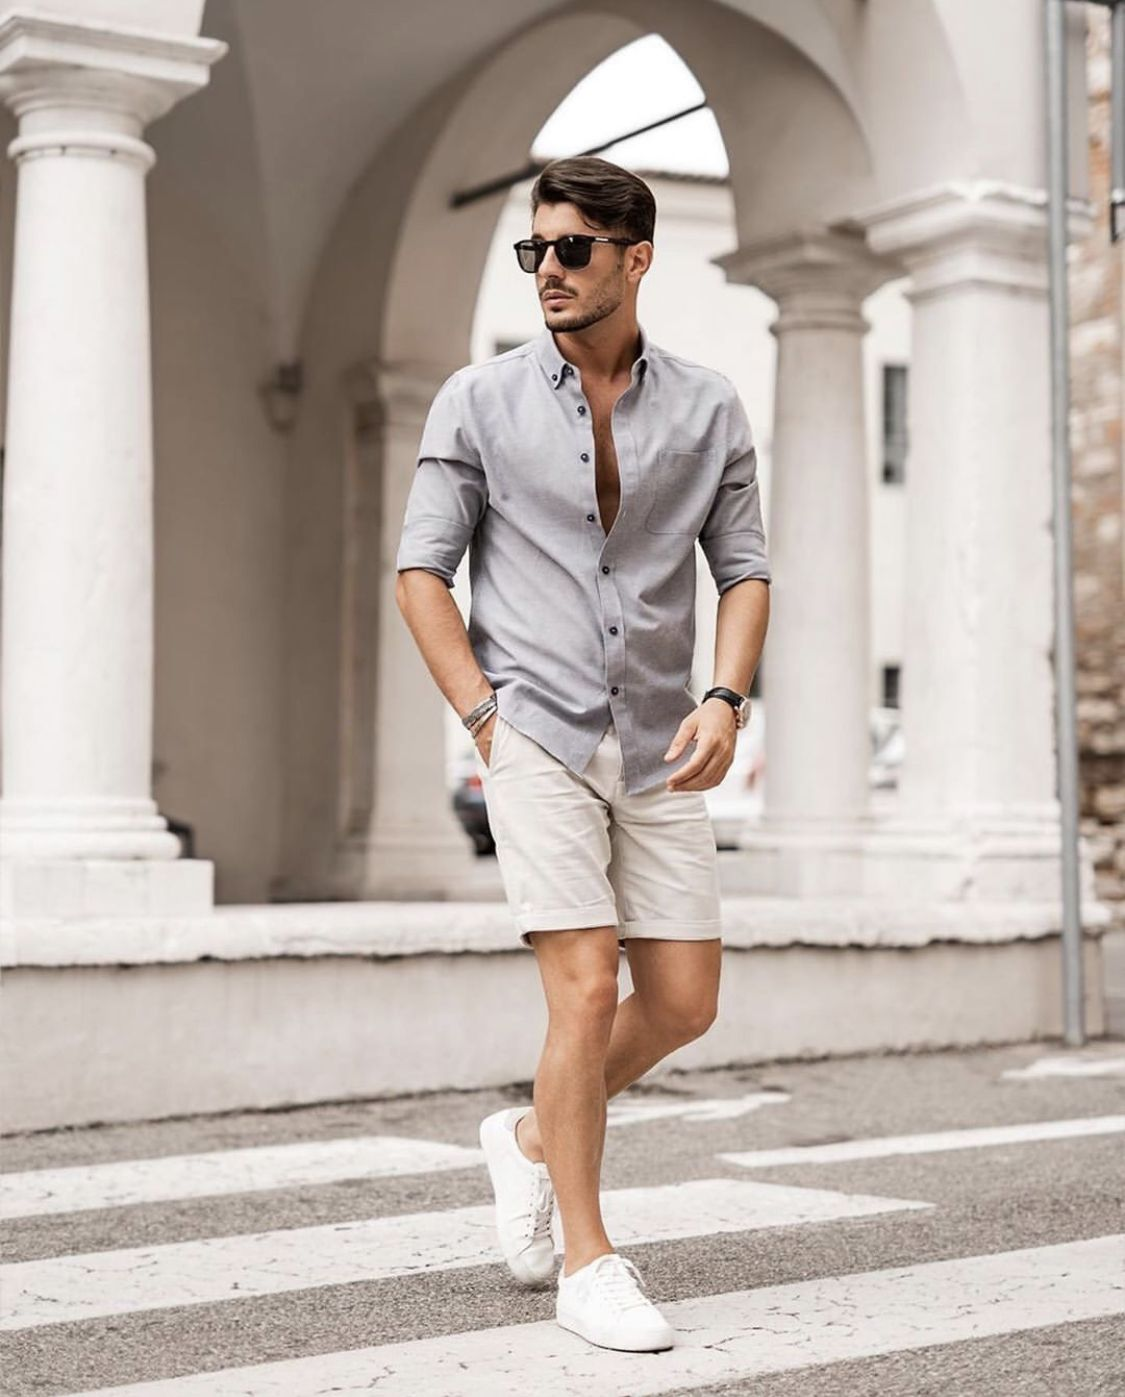 Pin By Nrrr On Shorts Smart Casual Menswear Smart Casual Outfit Men S Summer Smart Casual [ 1397 x 1125 Pixel ]